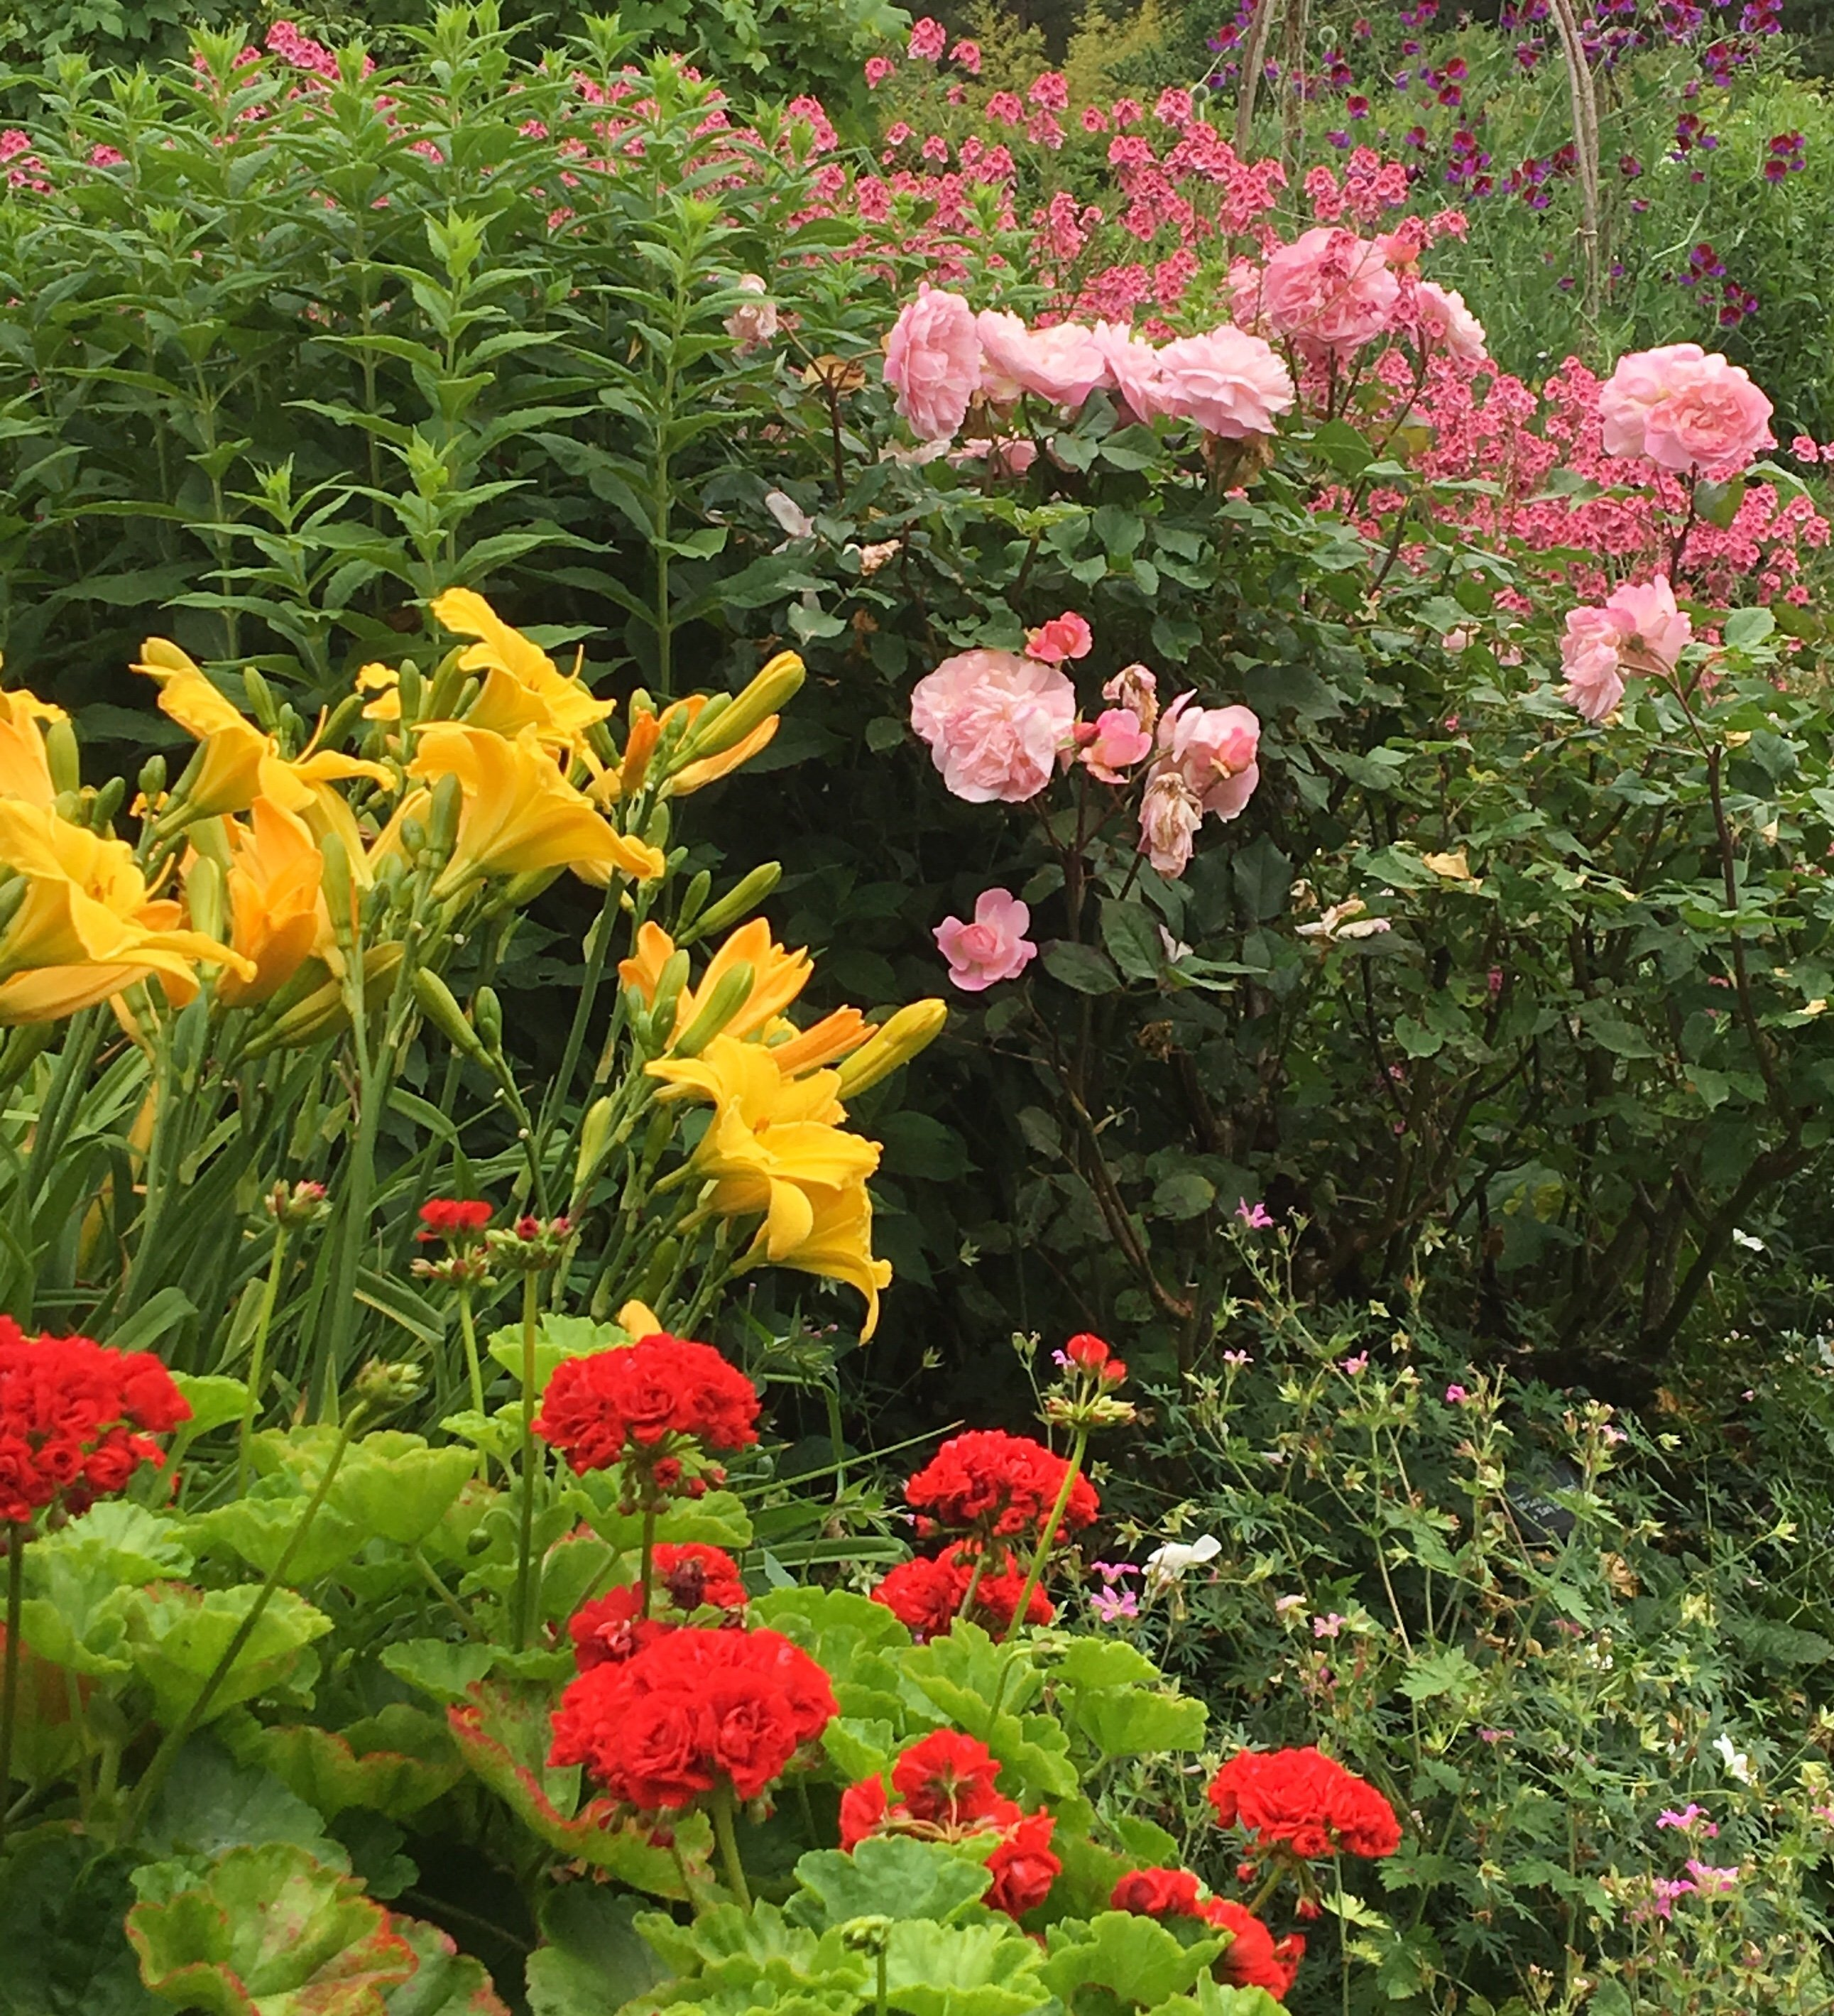 Yellow, red and pink perennial plants